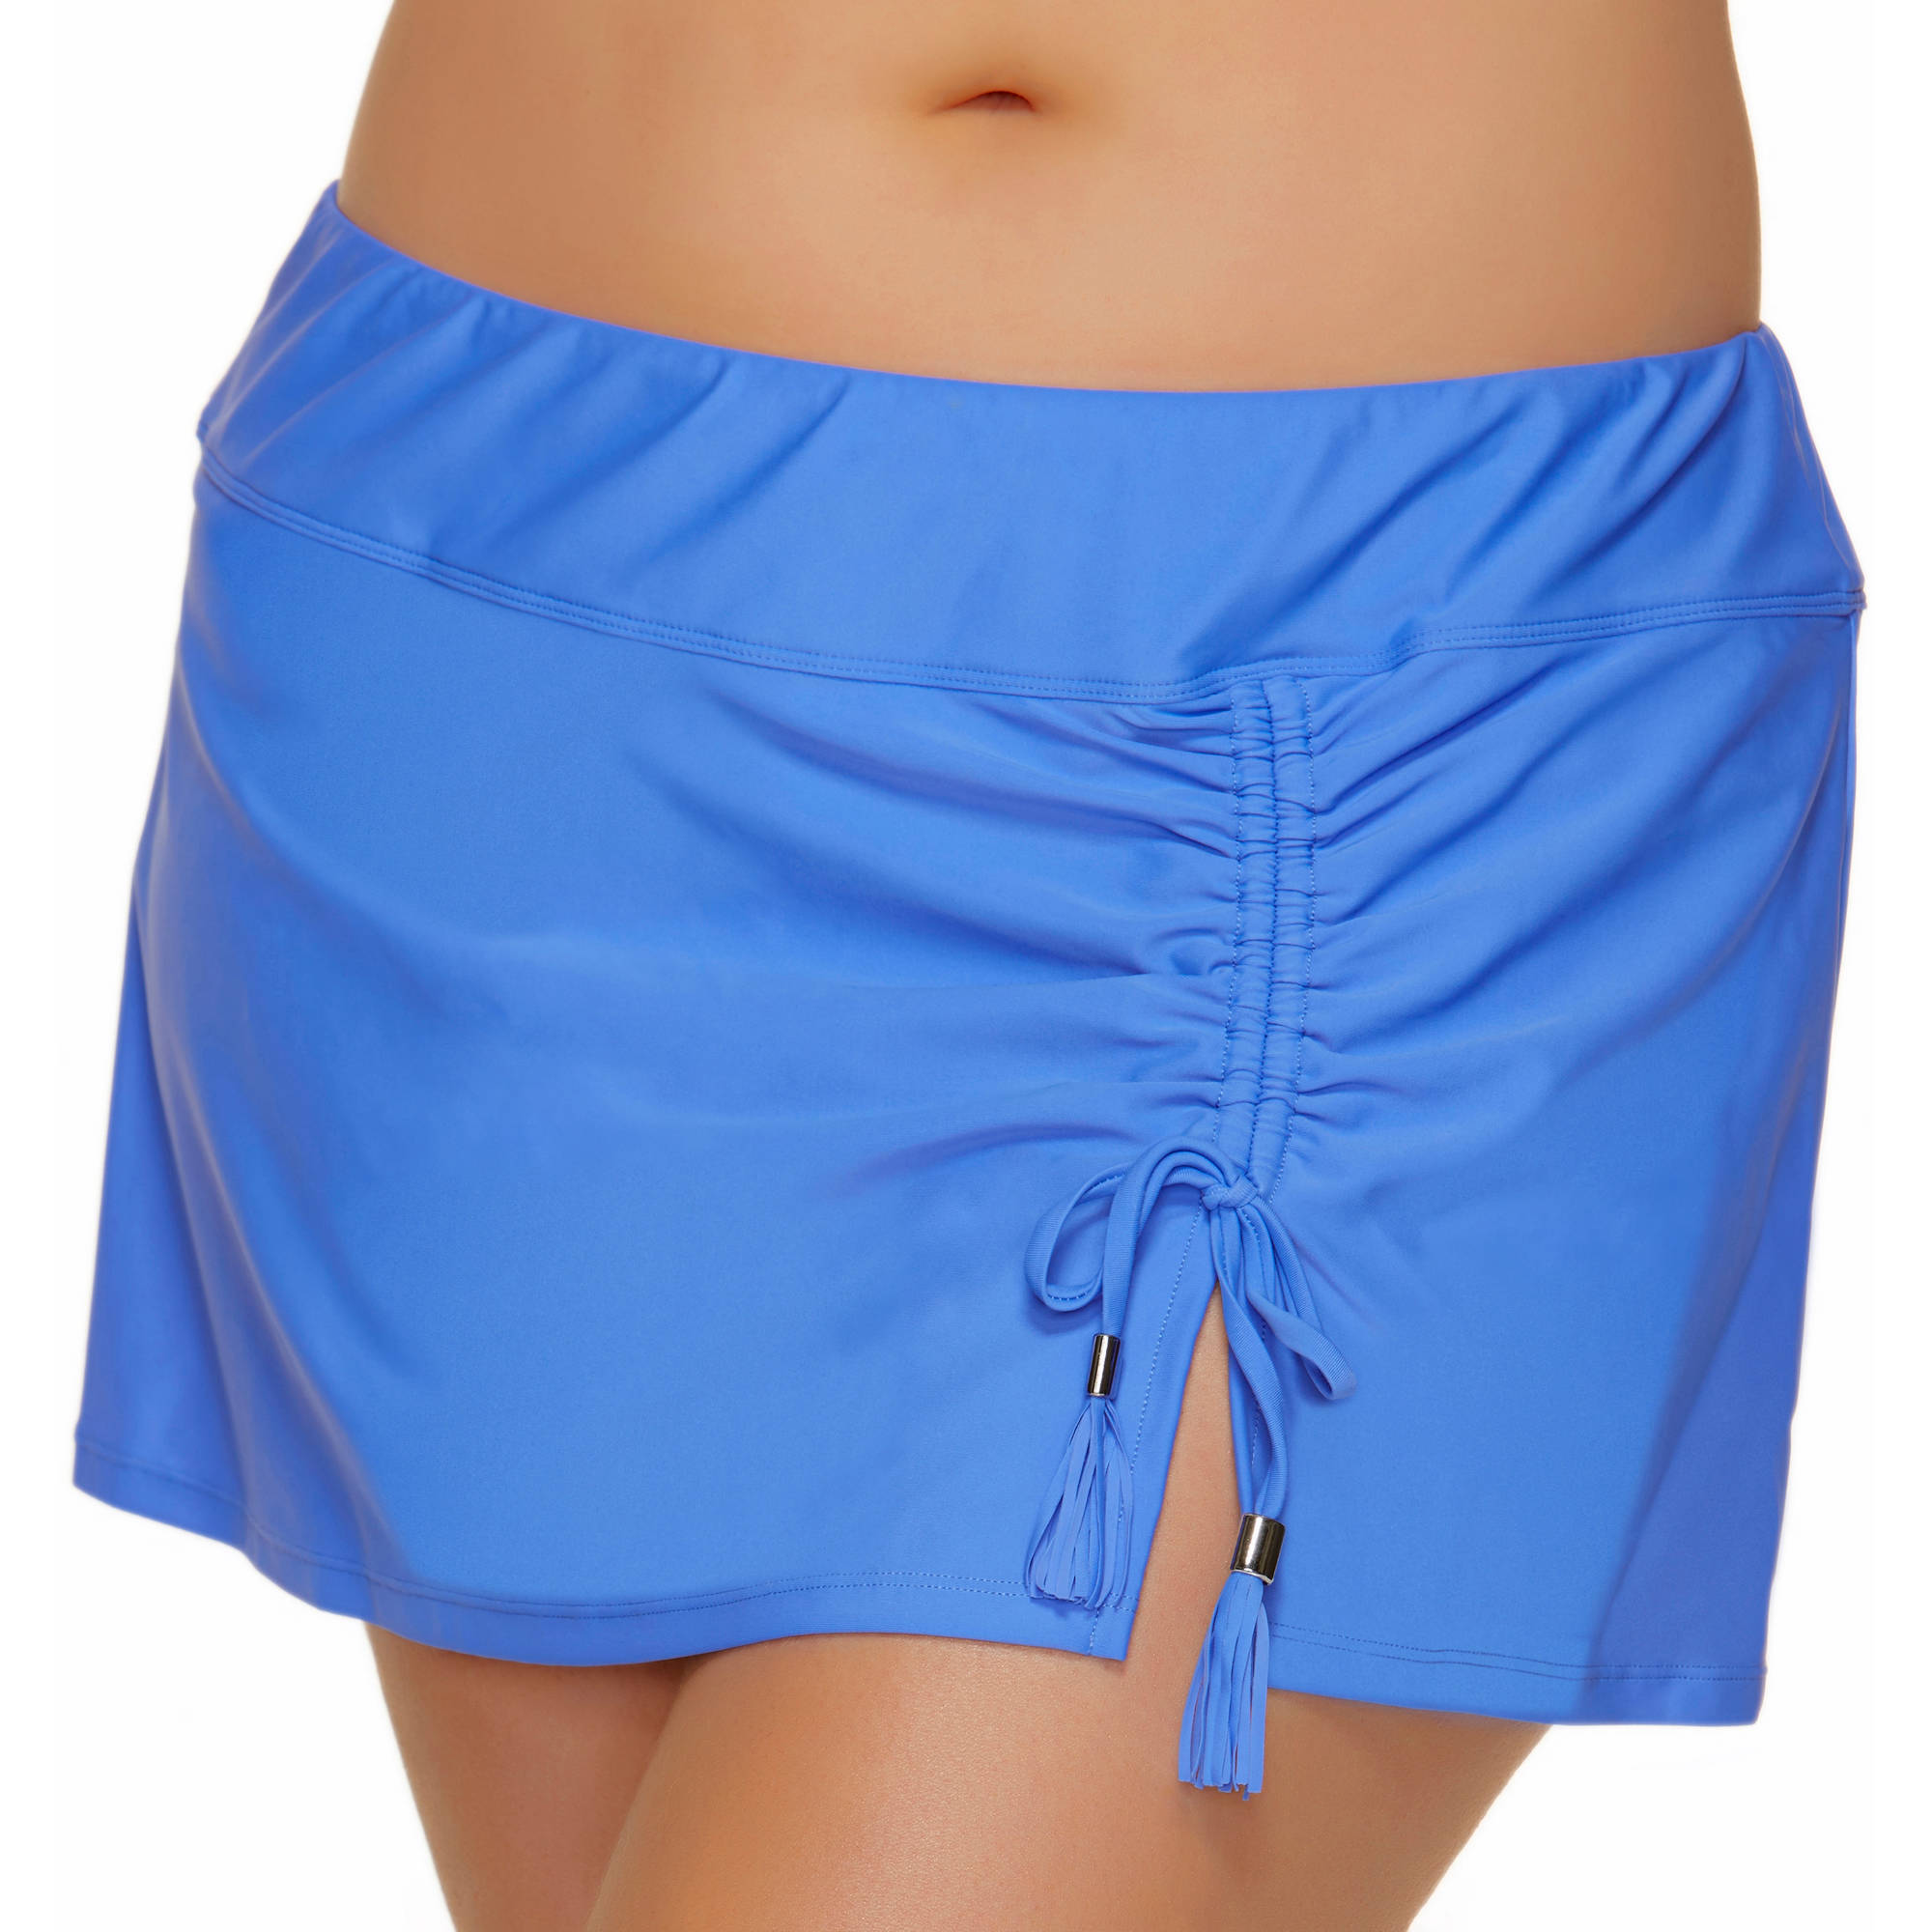 Collections by Catalina Women's Plus-Size Skirted Swimsuit Bottom With Adjustable Ties